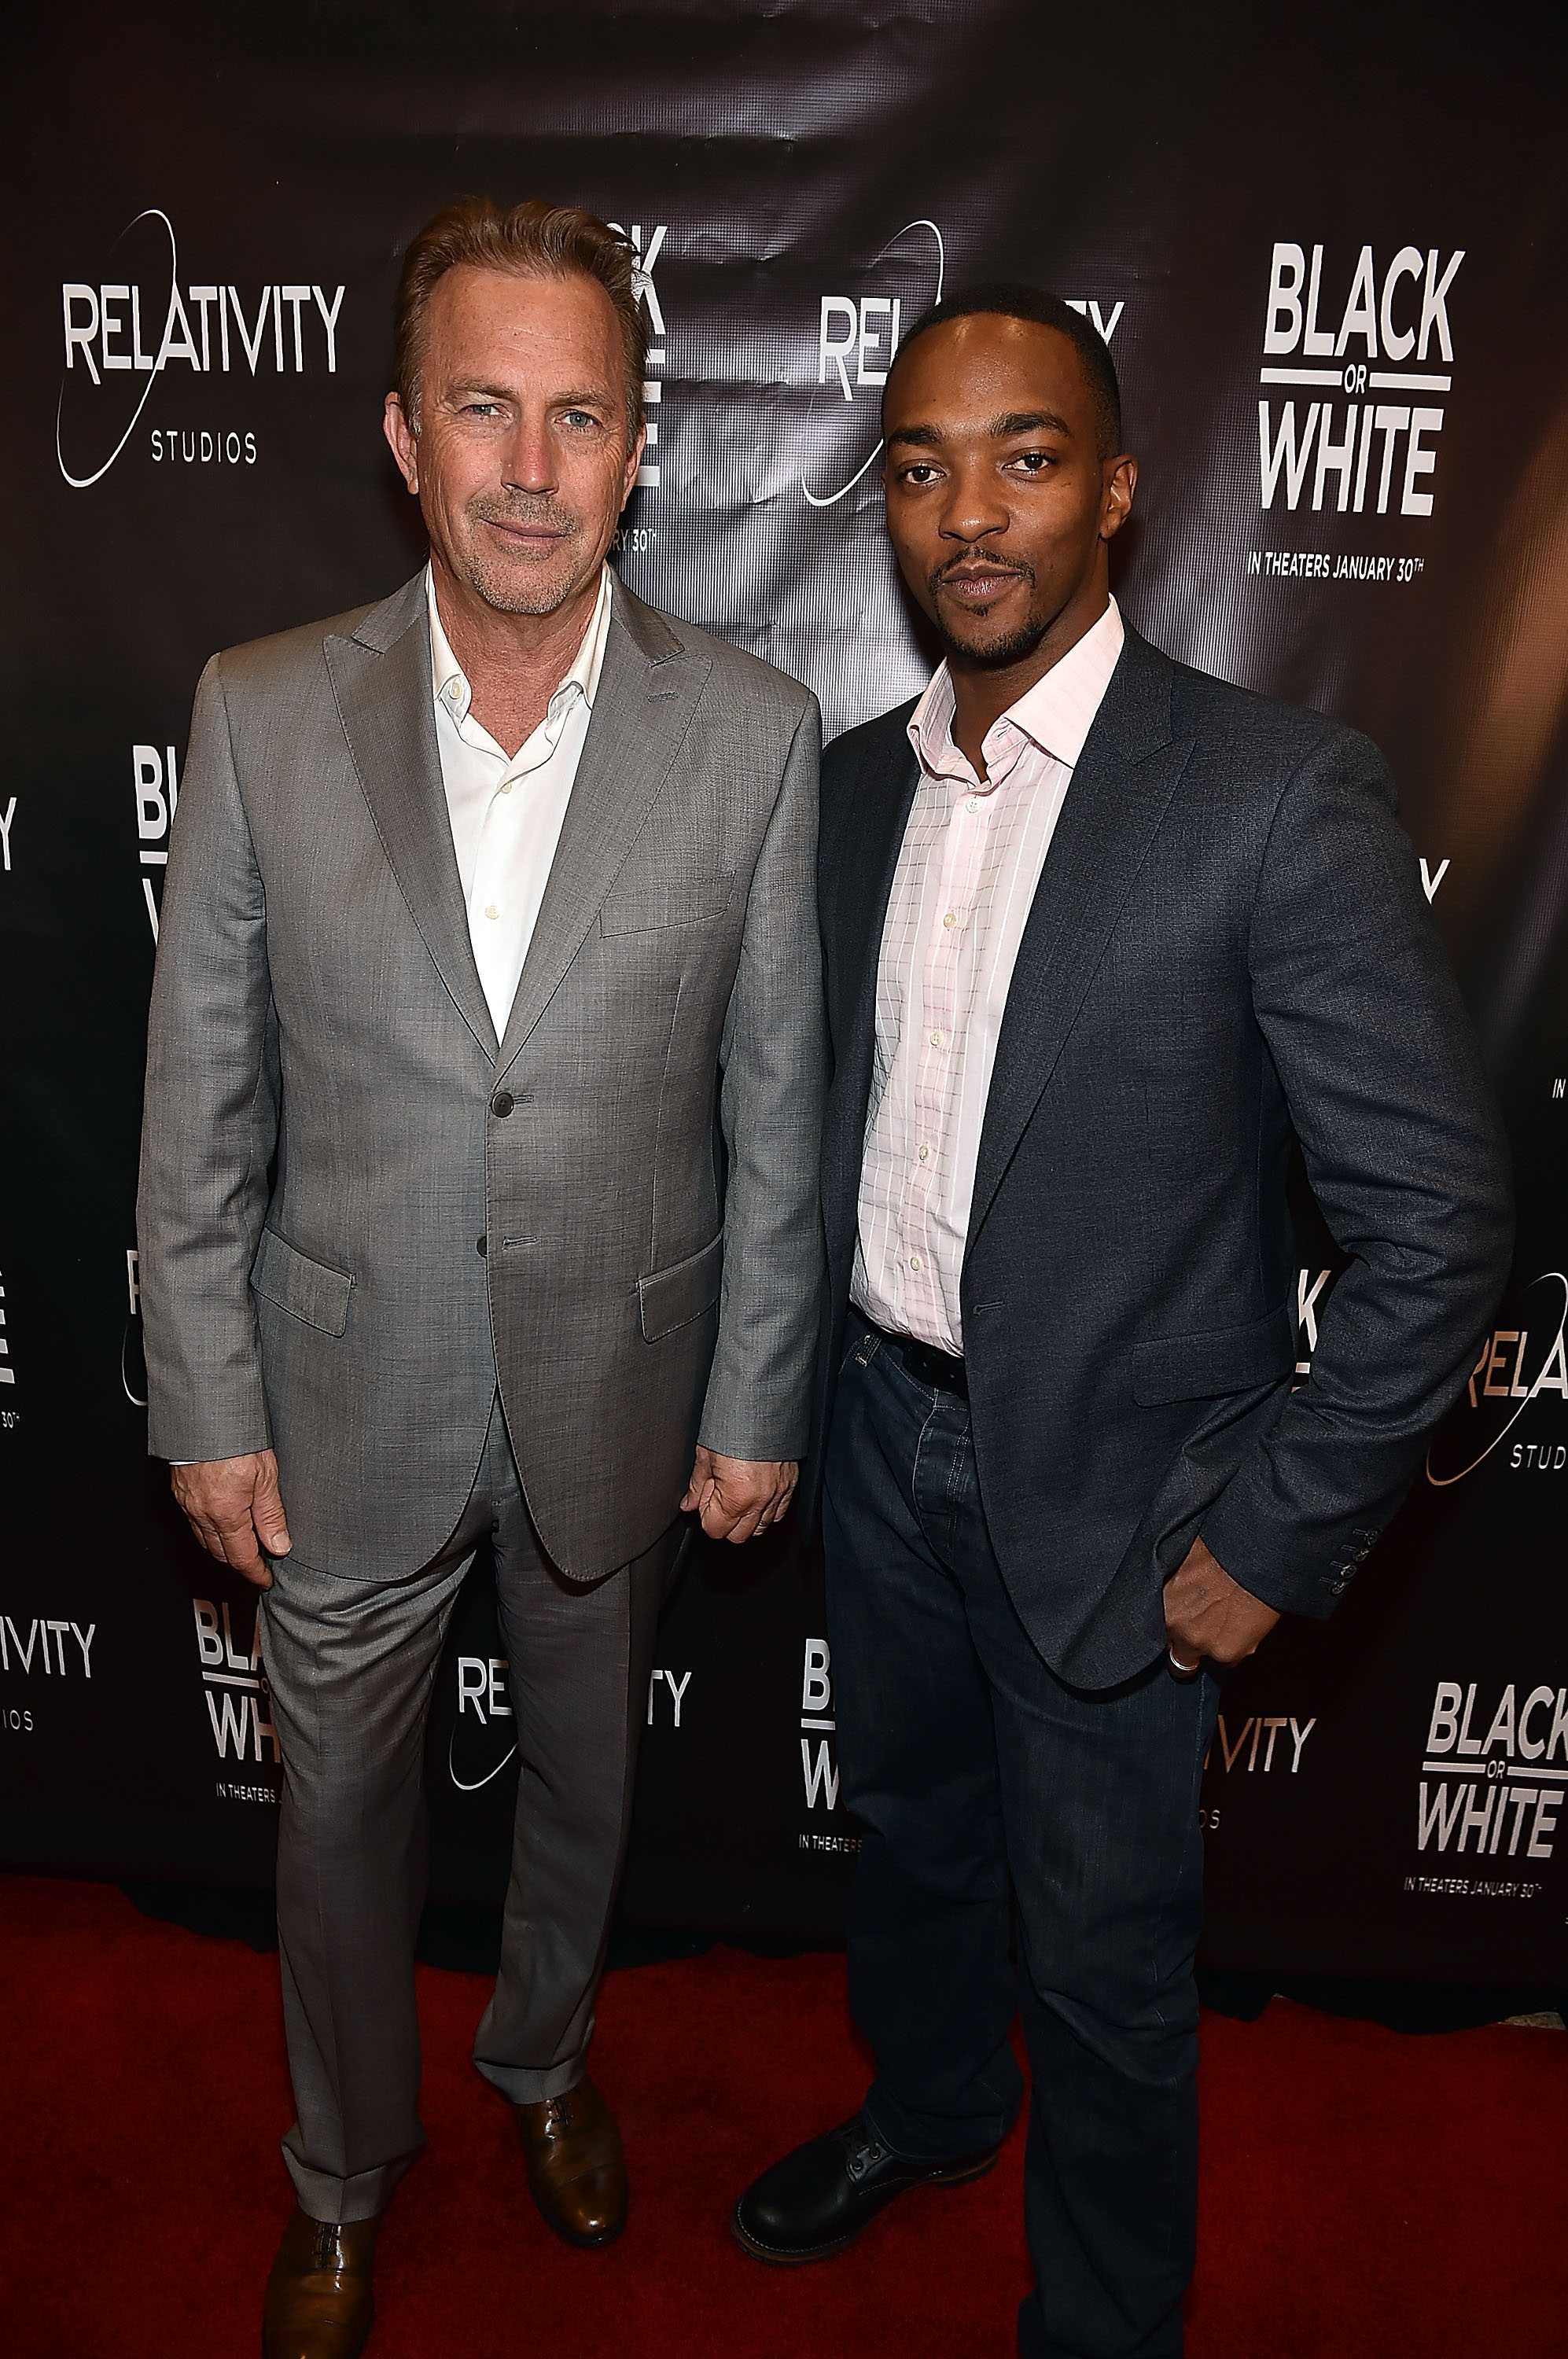 Black Or White Screening In Atlanta With Kevin Costner & Anthony Mackie